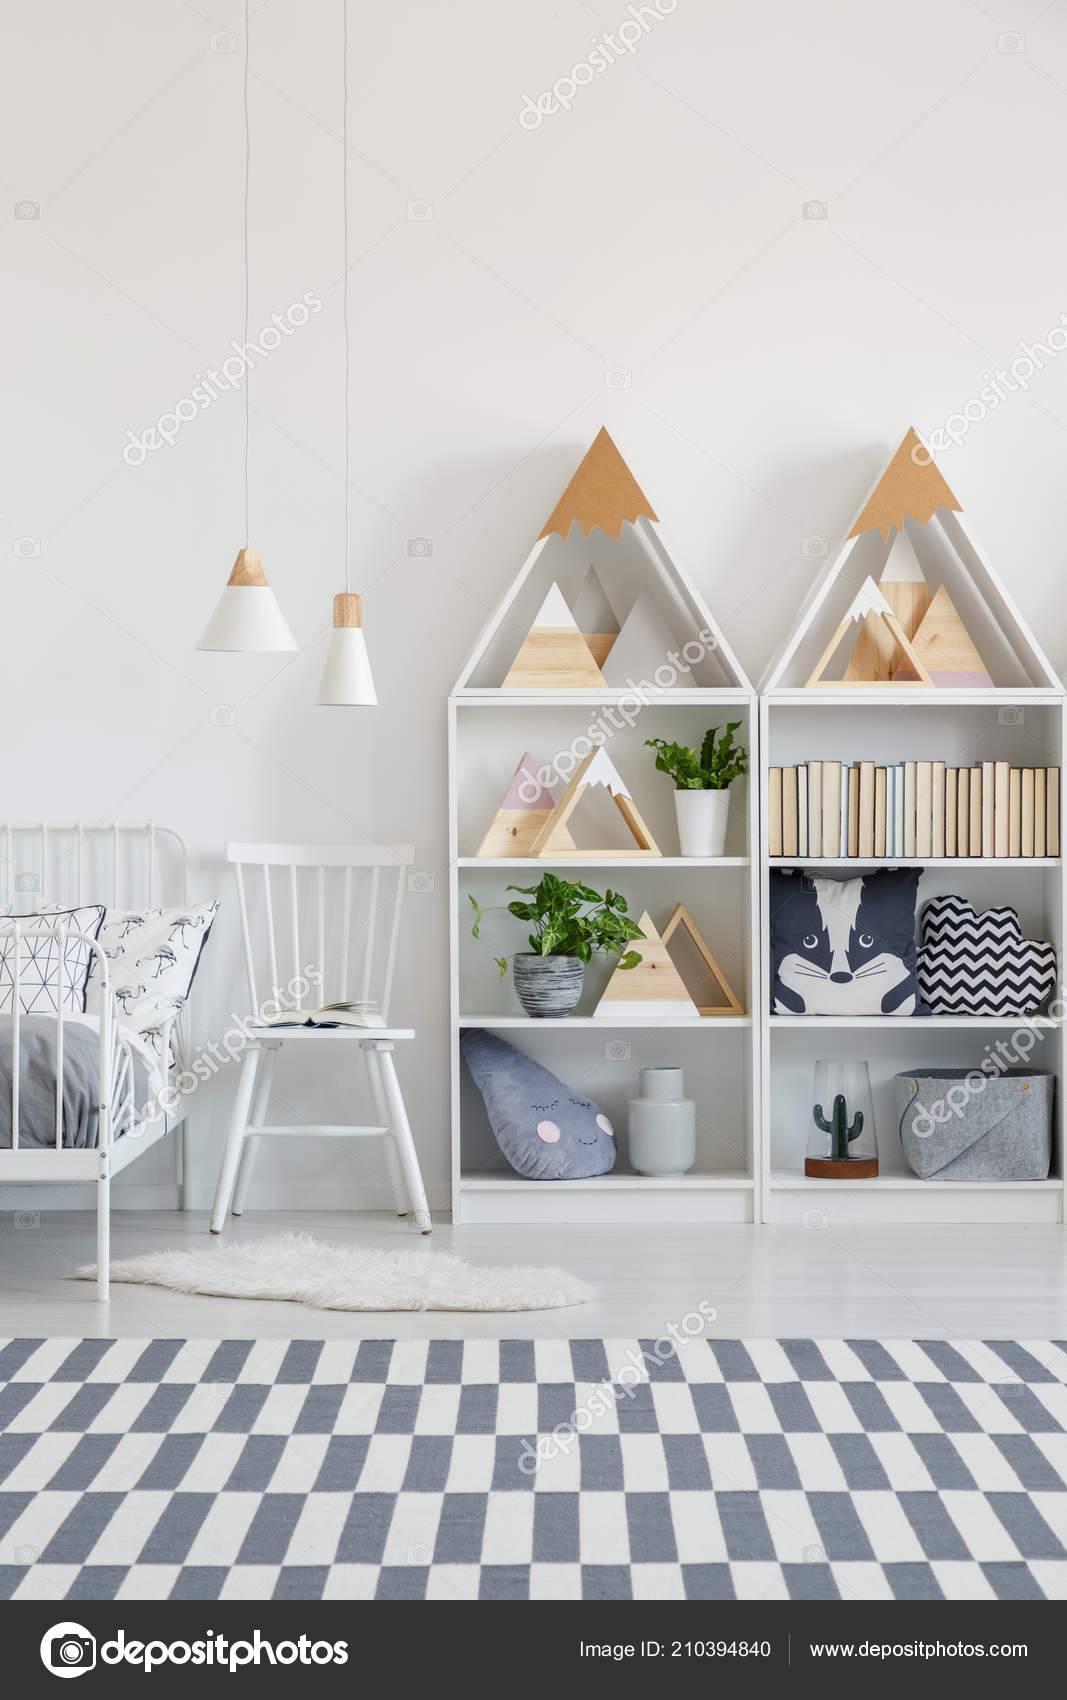 White Chair Bed Shelves Kid Bedroom Interior Patterned Carpet Real Stock Photo C Photographee Eu 210394840